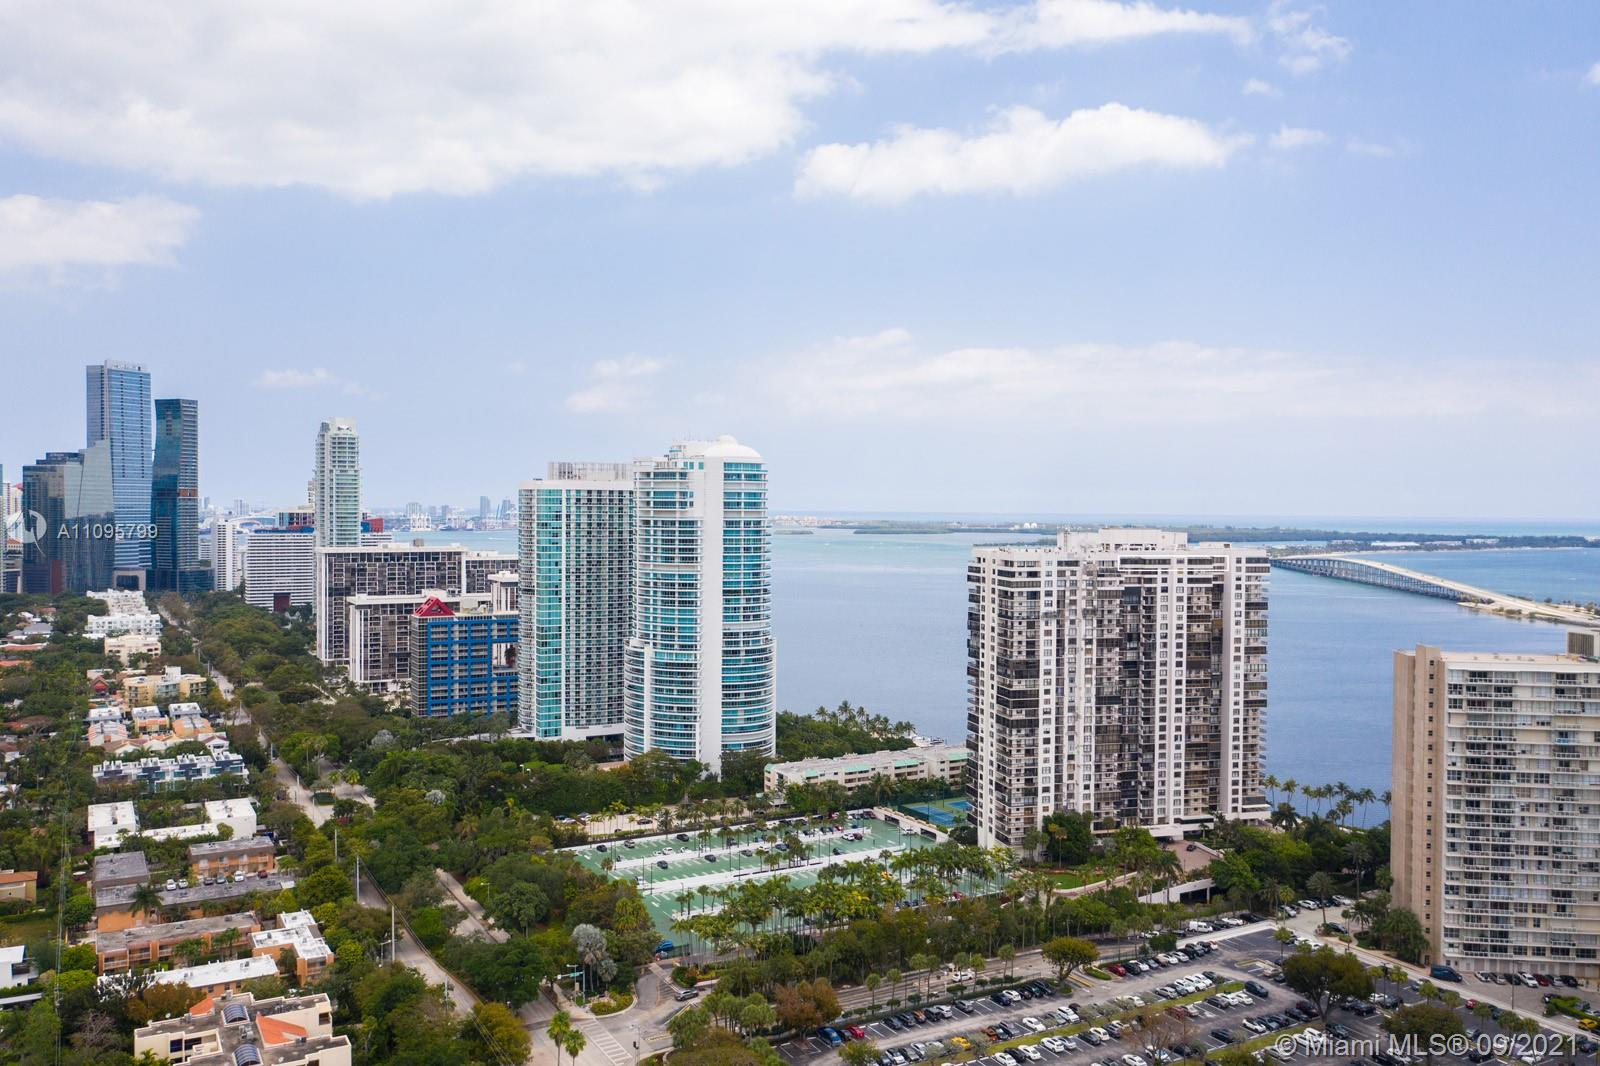 Located in one of Brickell's most recognized addresses, this bright and spacious 1 bedroom, 1.5 baths 14th floor apartment features beautiful views of Biscayne Bay and Downtown Miami, updated kitchen and baths, hurricane impact sliding glass doors and window, washer and dryer inside unit, oversized walking closet in master bedroom with California closet built-ins.  This building's many amenities include 24 hr. security and valet, pool and jaccuzzi overlooking the bay, tennis courts,  gym, children's play area, convenience store, hair salon, community room, large common areas for afternoon strolls and entertaining.